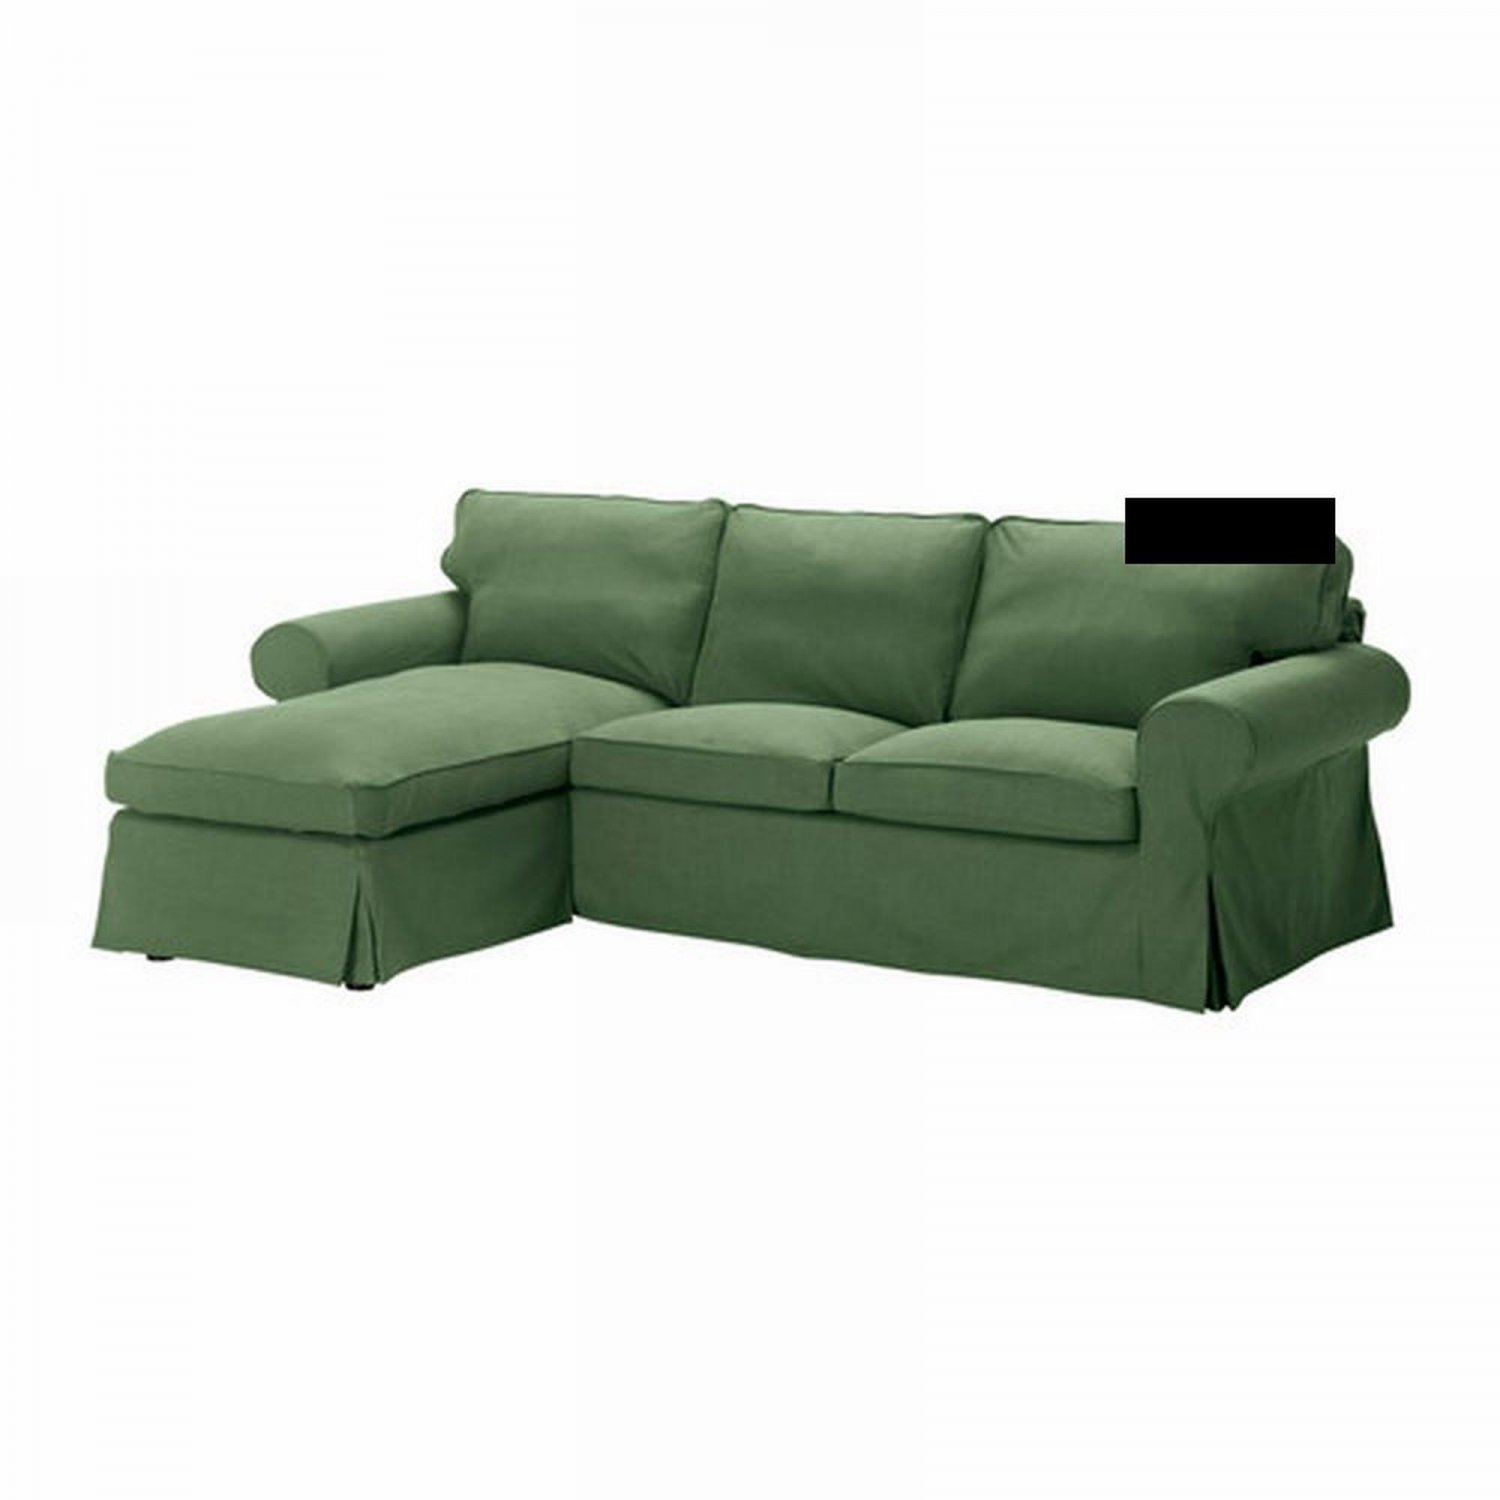 Ikea ektorp 2 seat loveseat w chaise cover 3 seat for Chaise couch slipcover